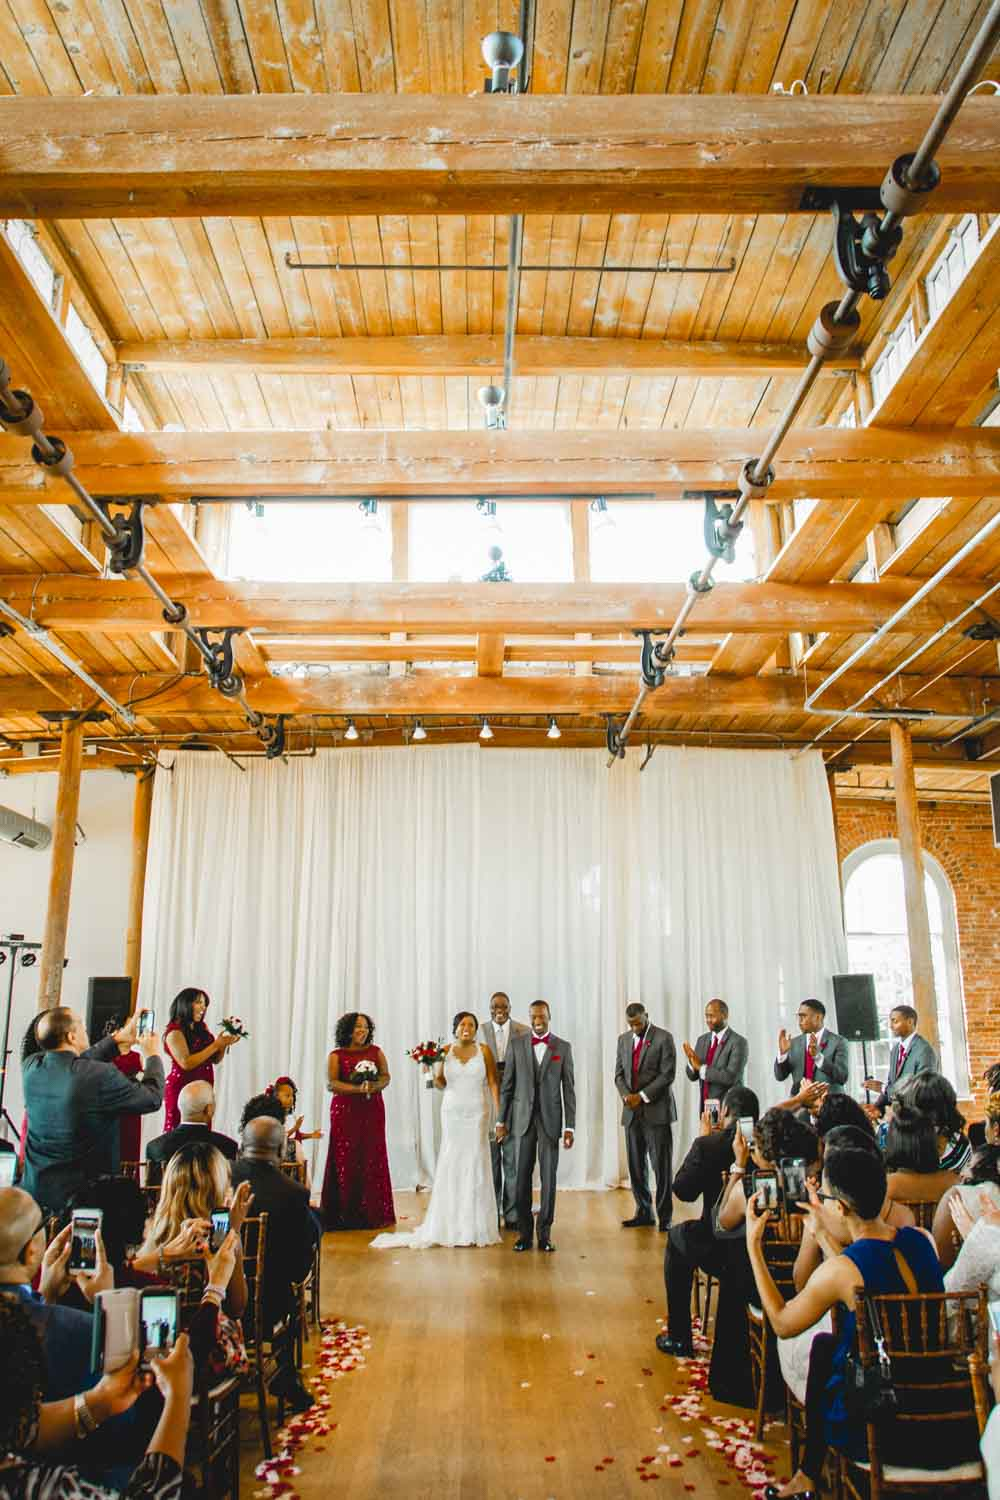 The-Cotton-Room-Wedding-Venue-Photos